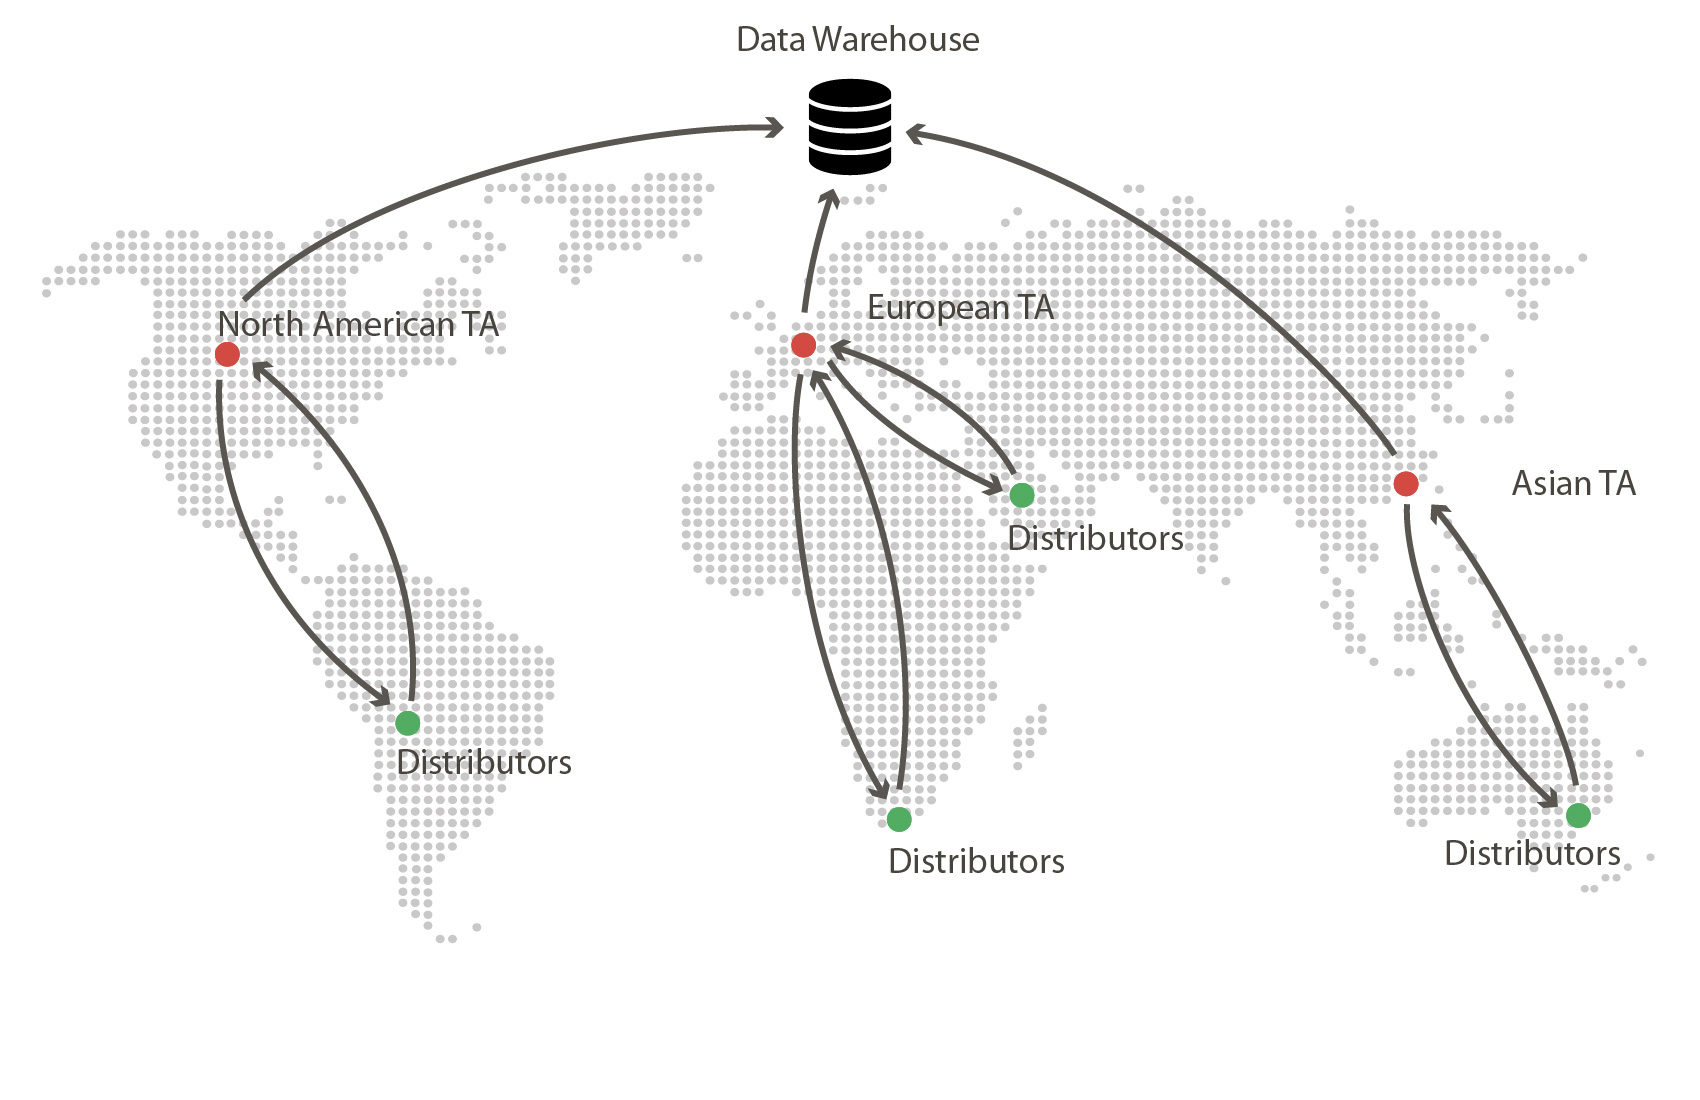 Map shows a visualization of the model in which regional agents submit data to a global data warehouse